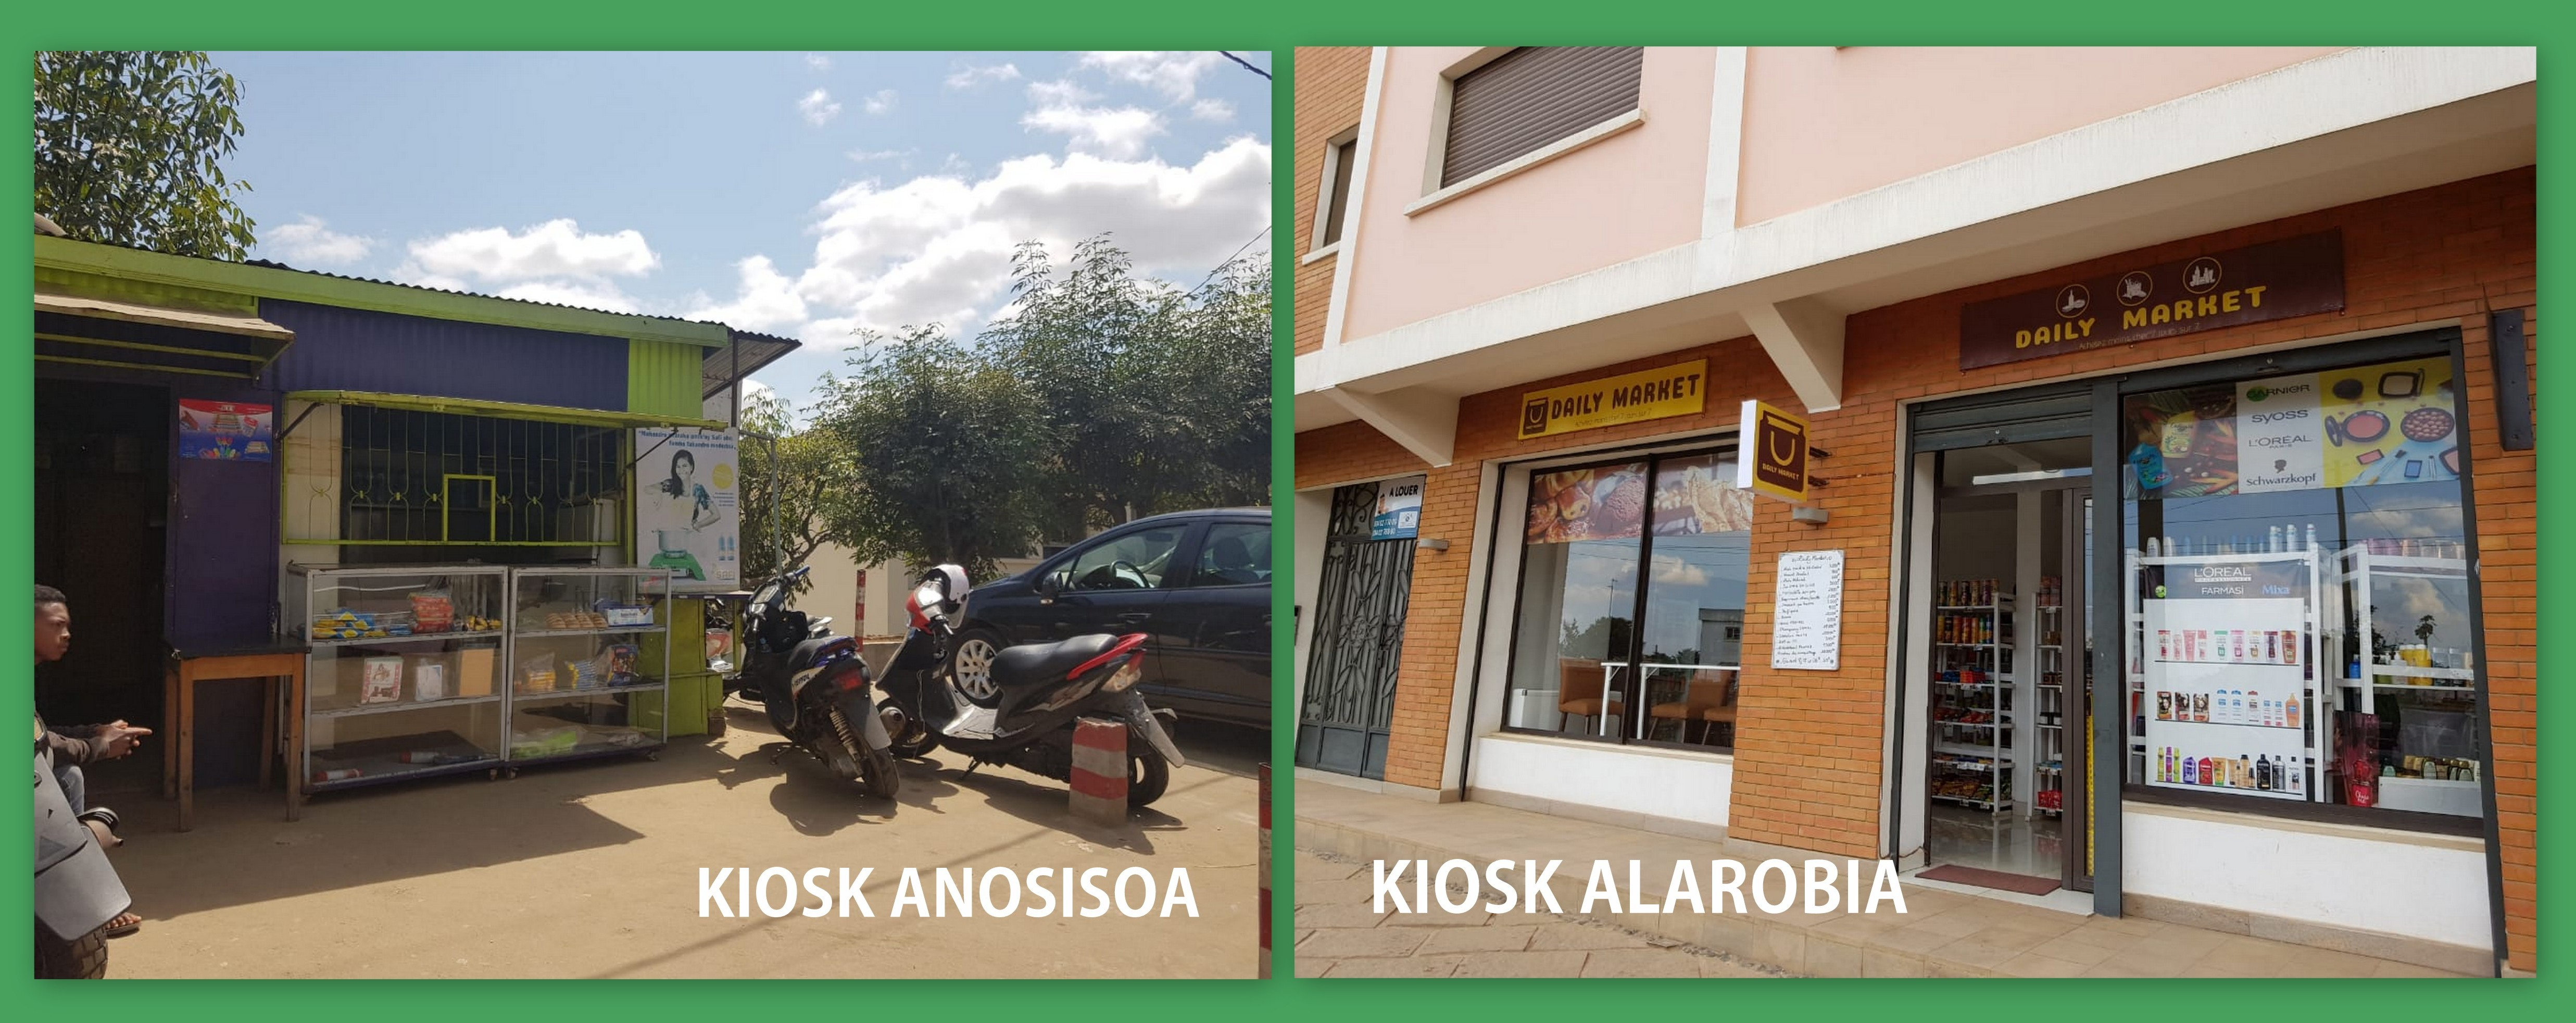 Ethanol is available in Antananarivo in two new kiosks